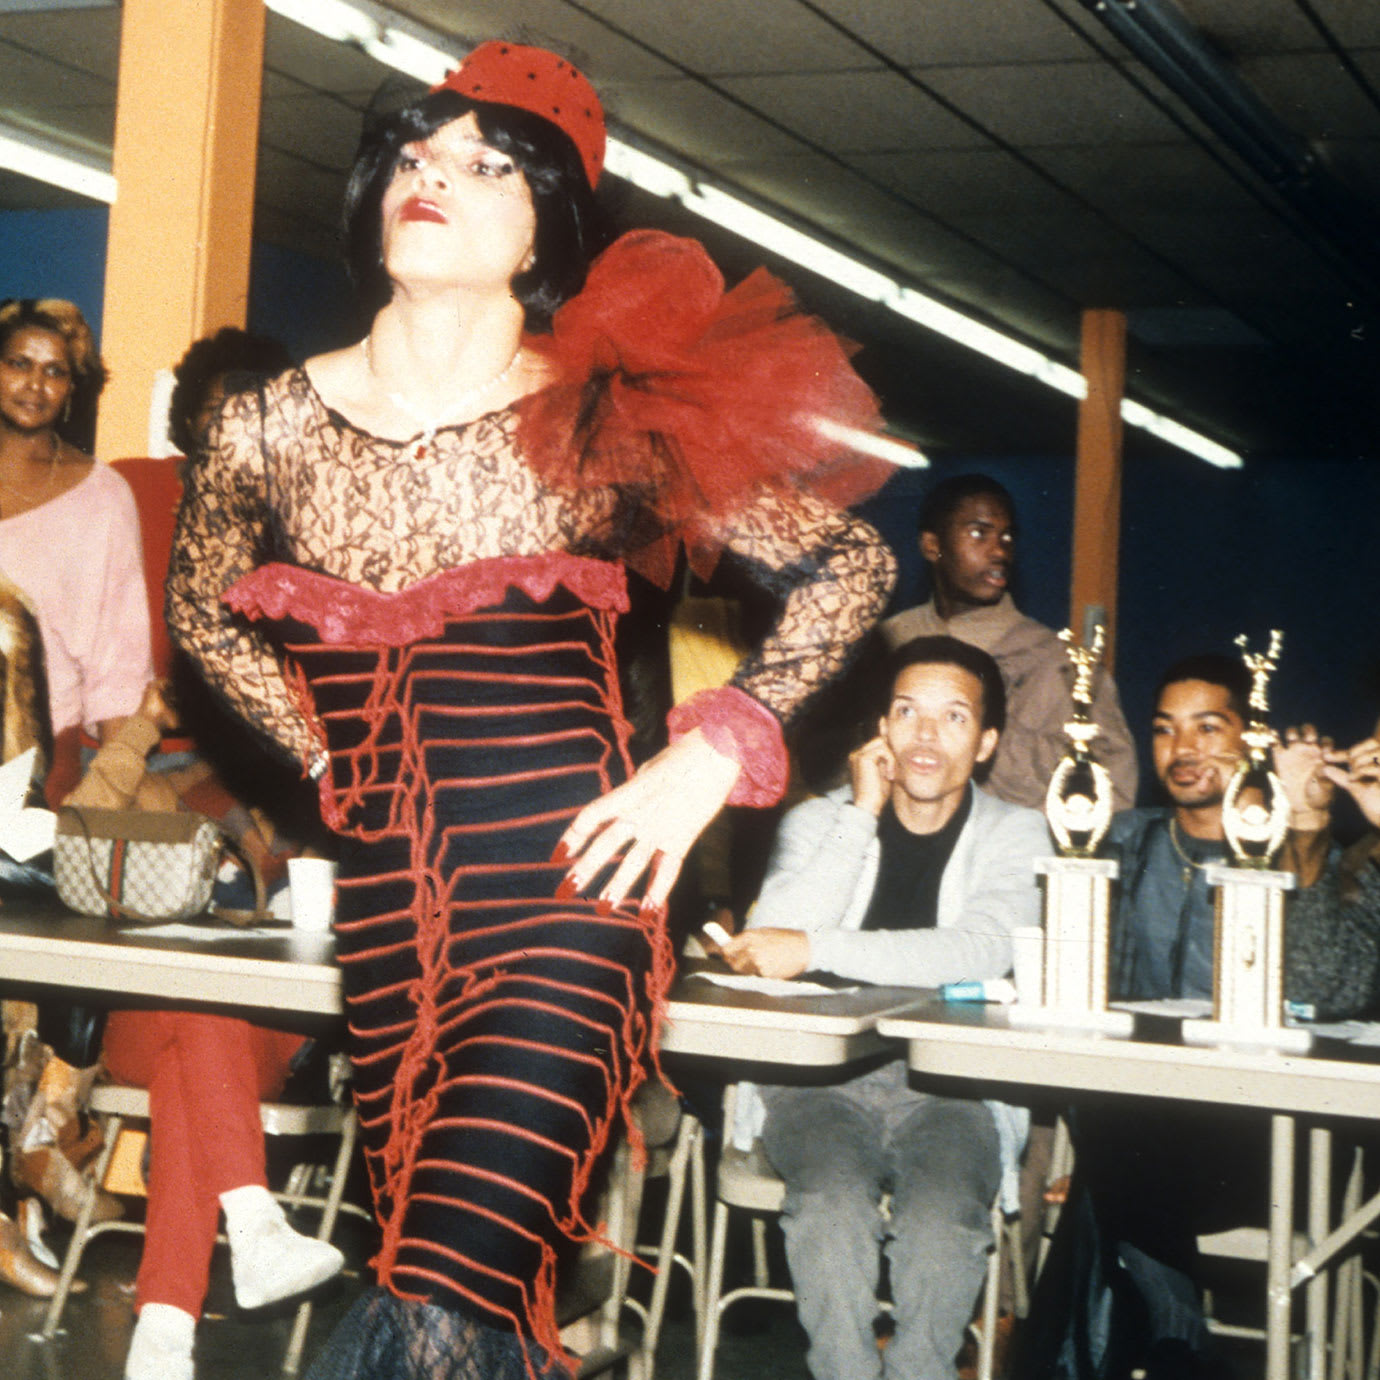 A man in drag walking during a vogueing competition.